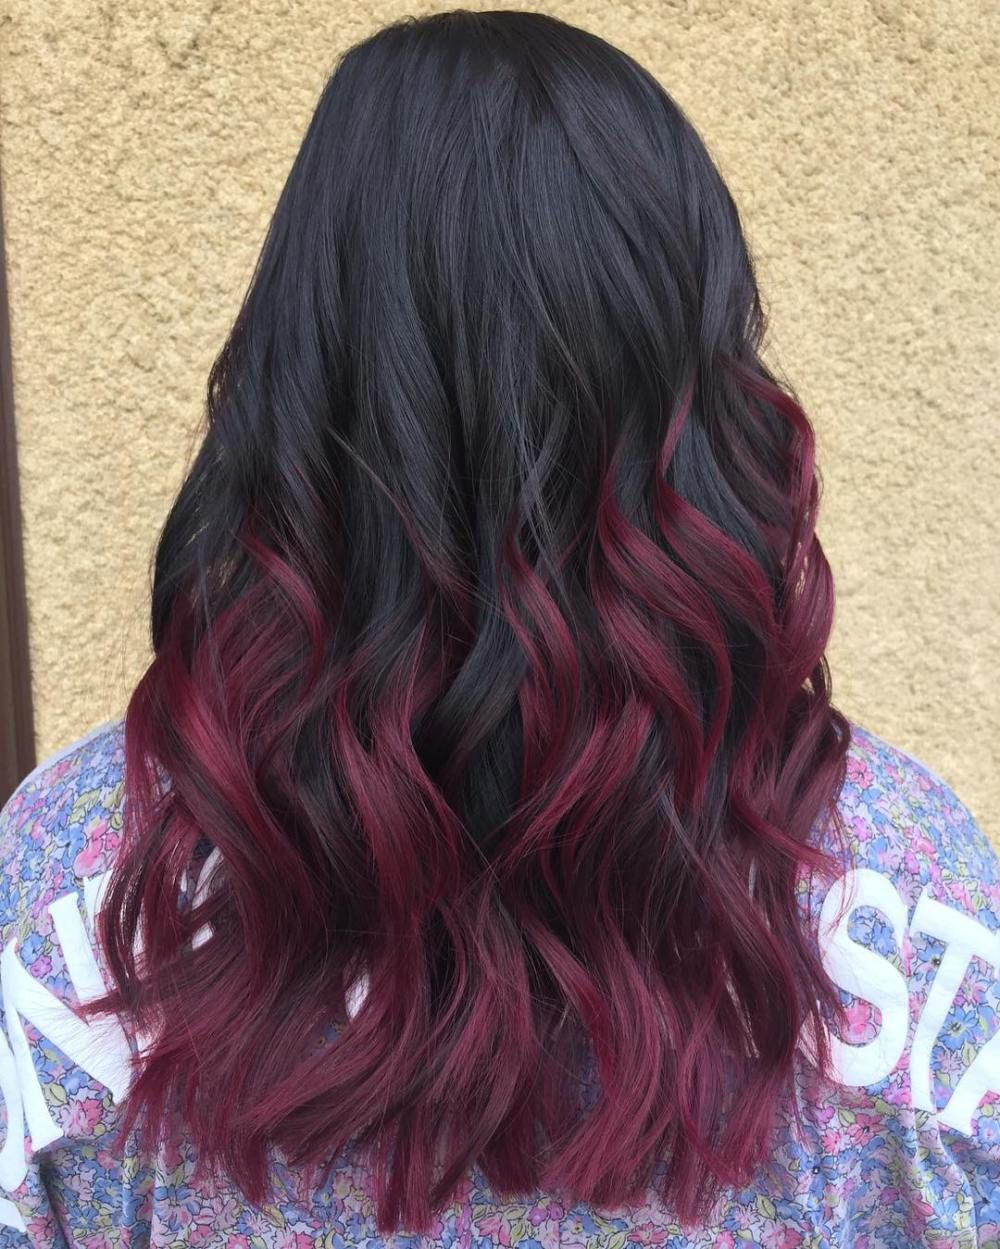 45 Shades of Burgundy Hair Dark Burgundy, Maroon, Burgundy